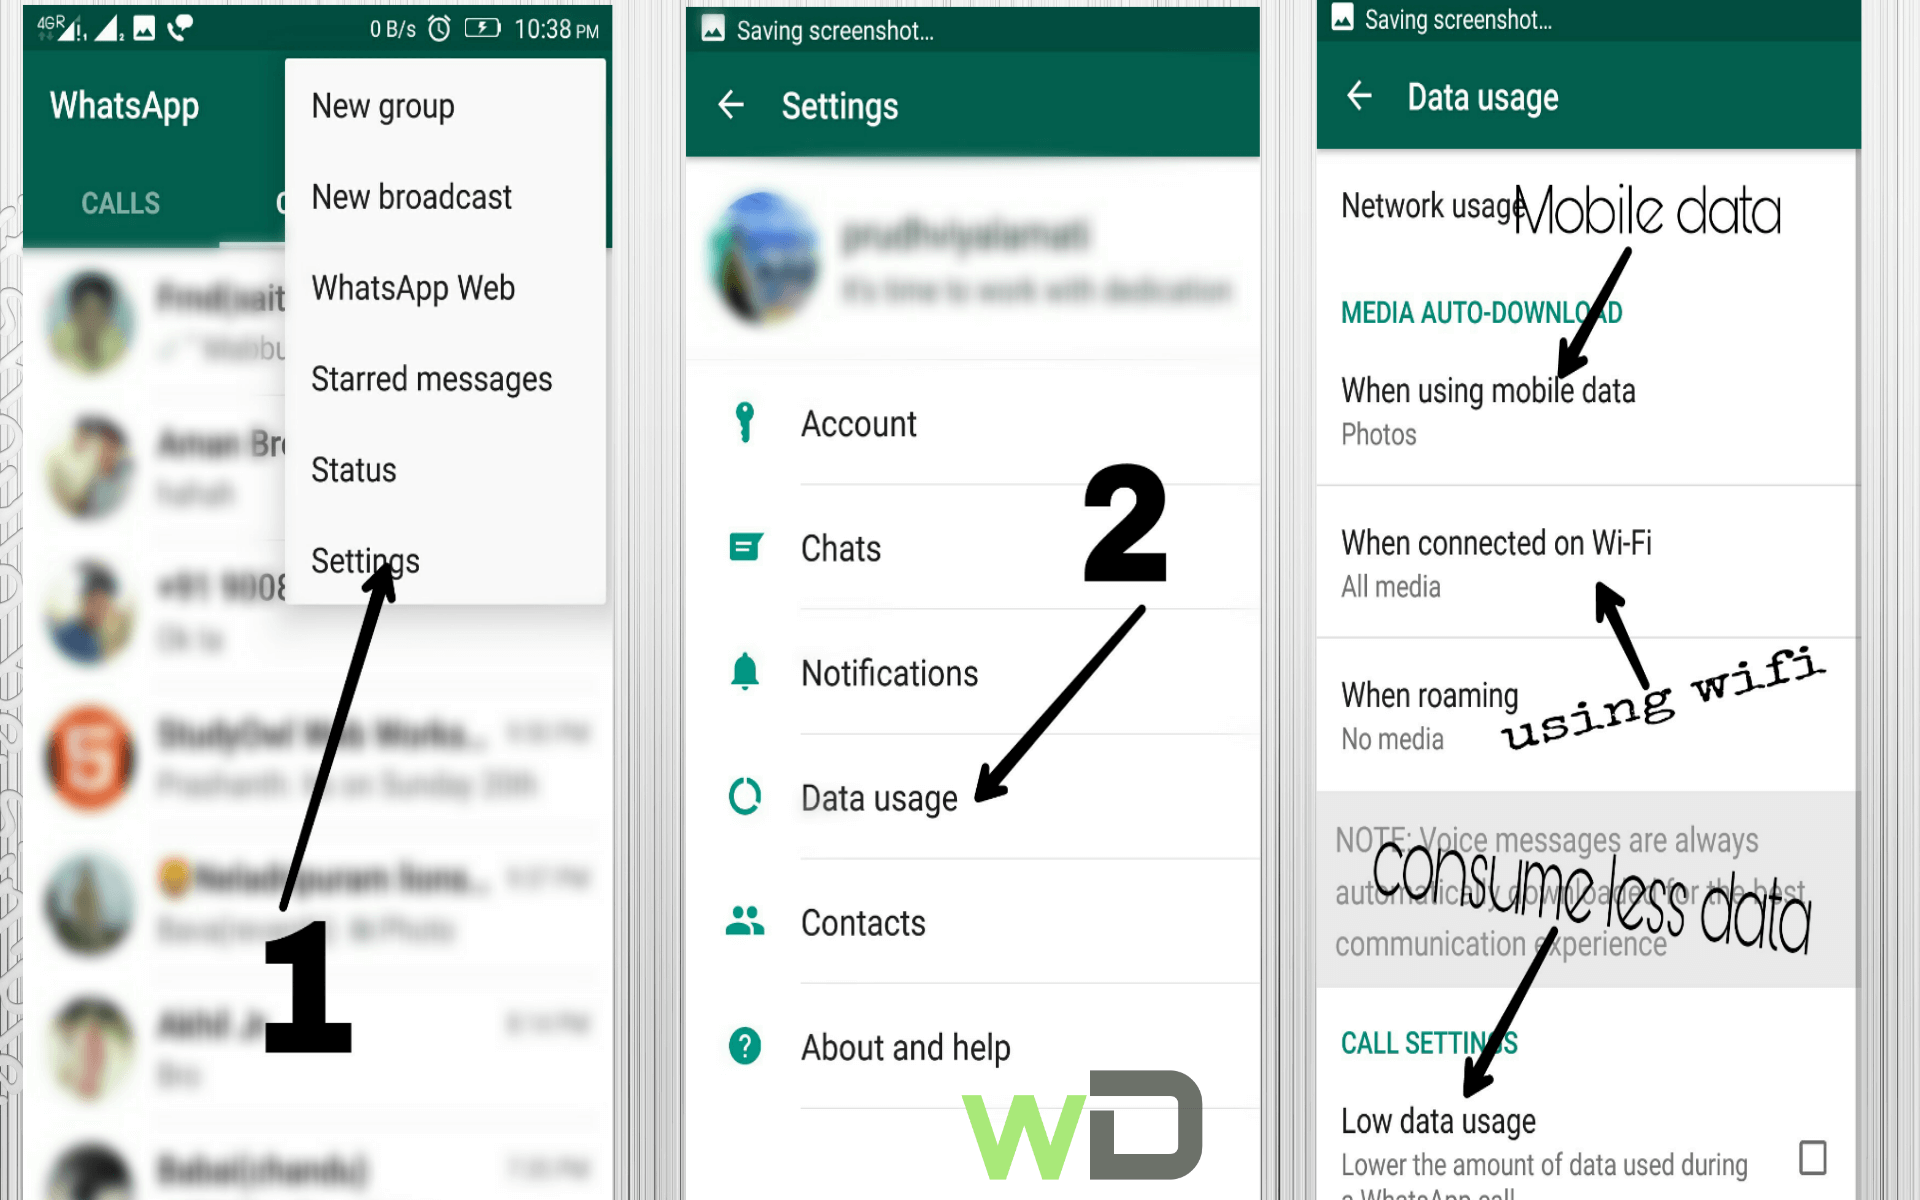 Find Out Who You Converse The Most in whatsapp